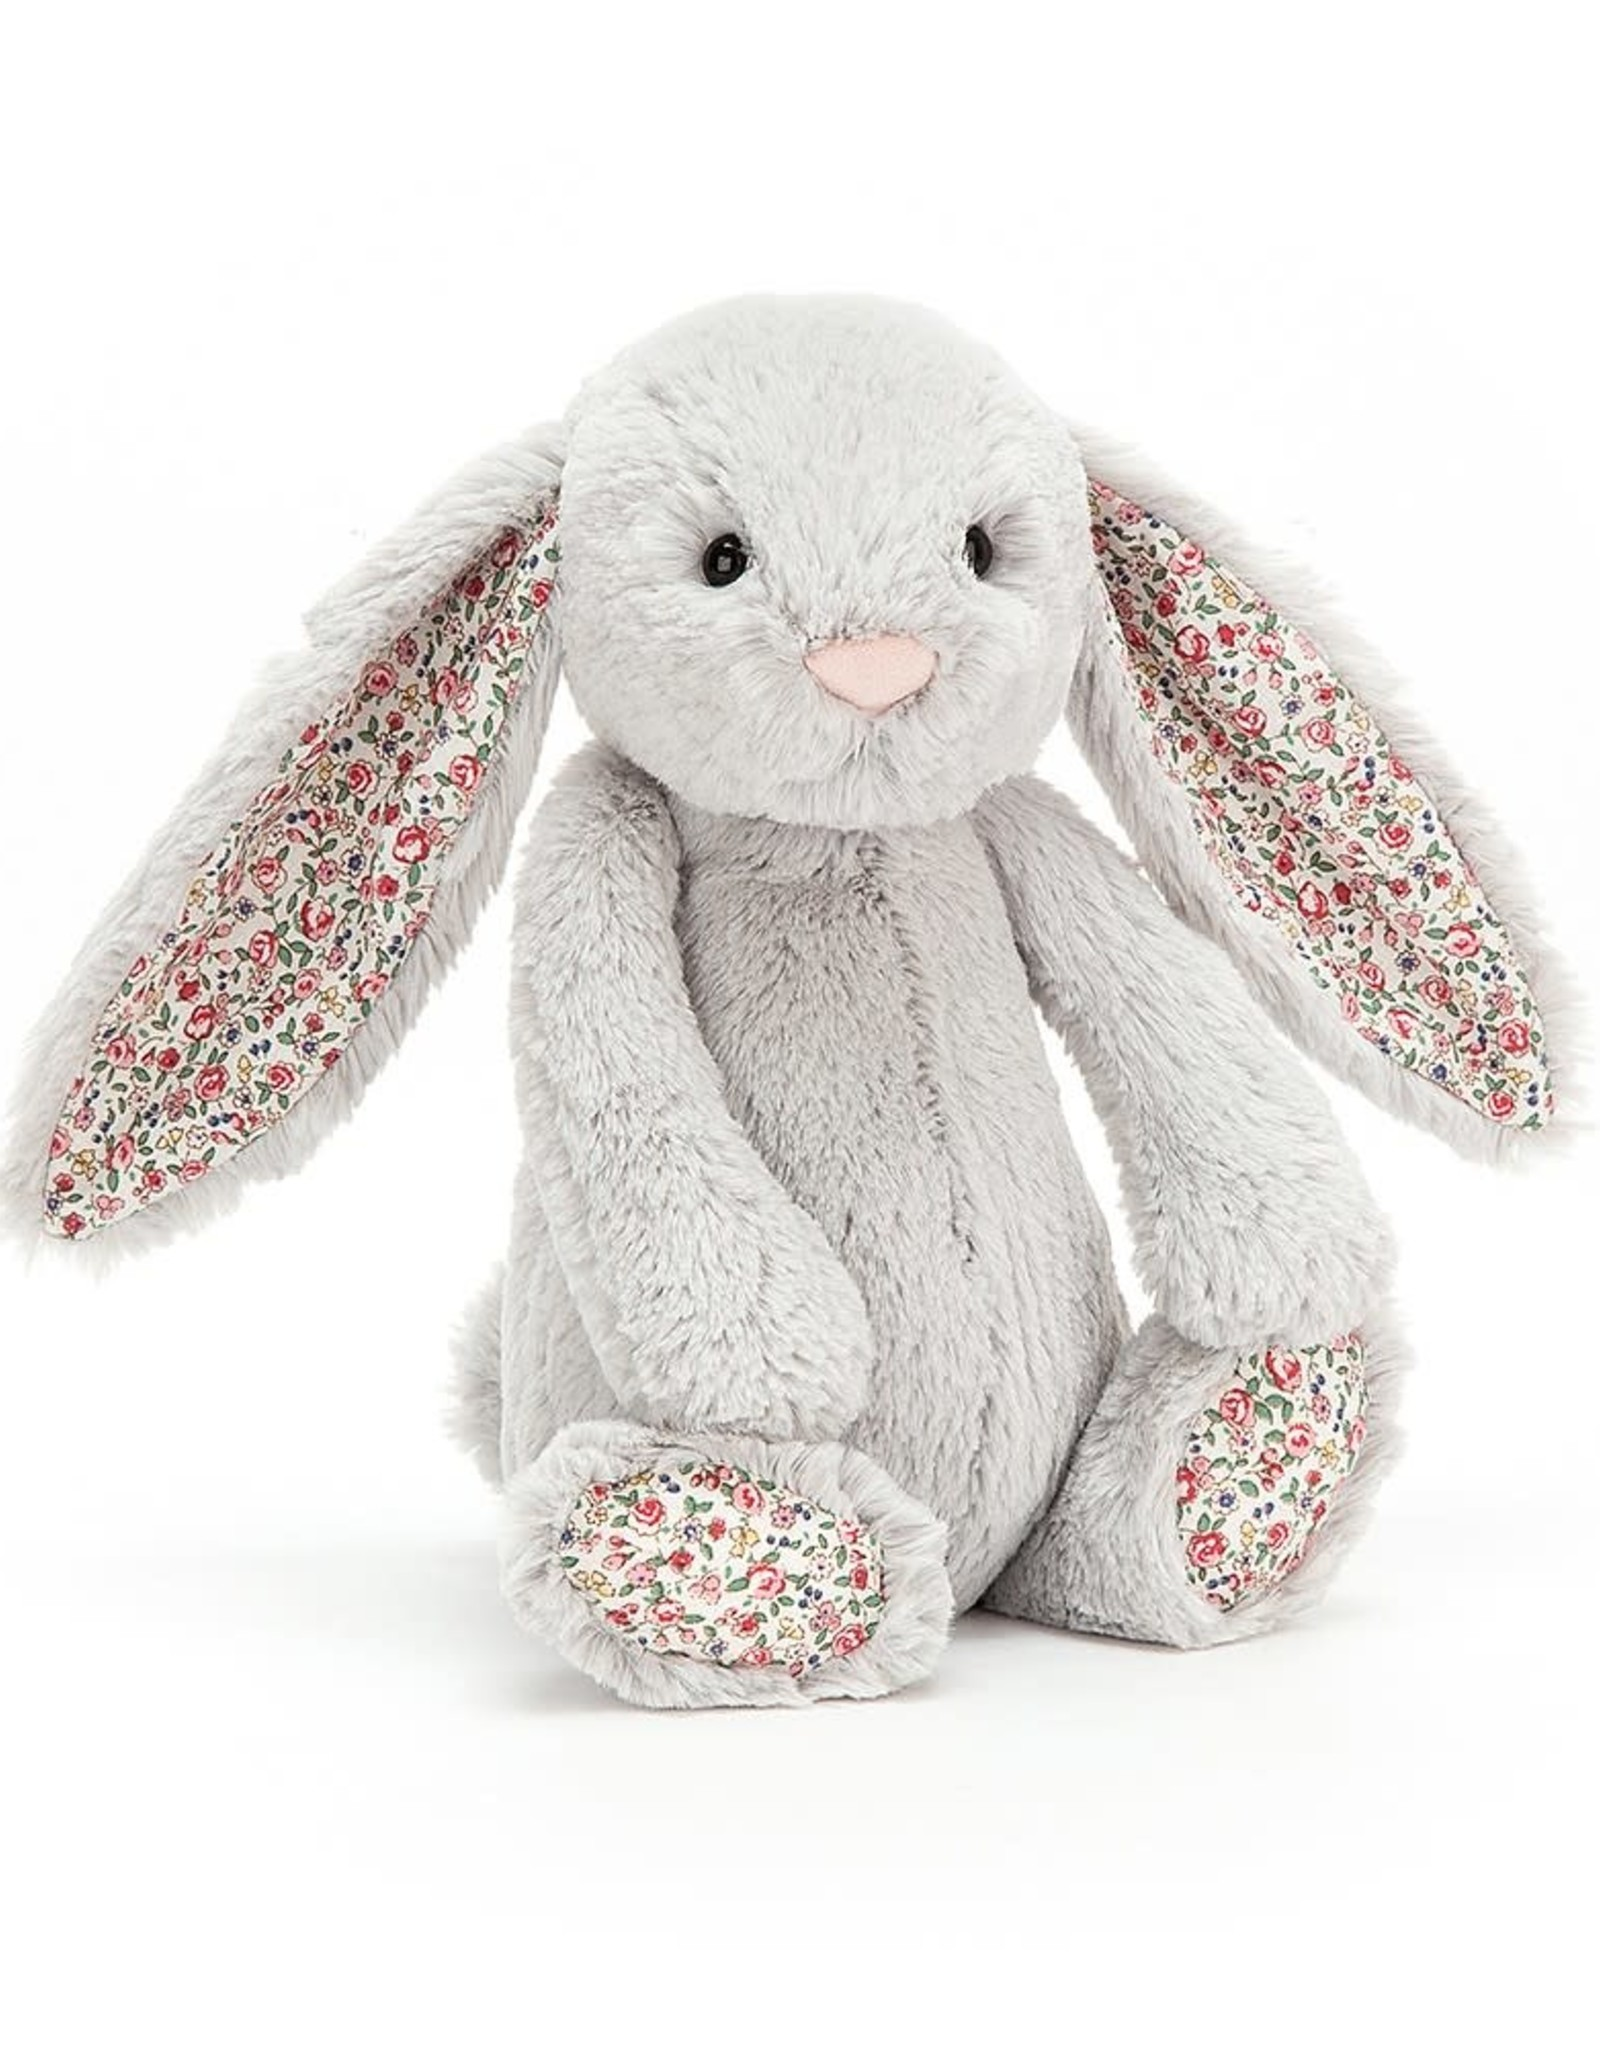 Jellycat Blossom Silver Bunny 12""